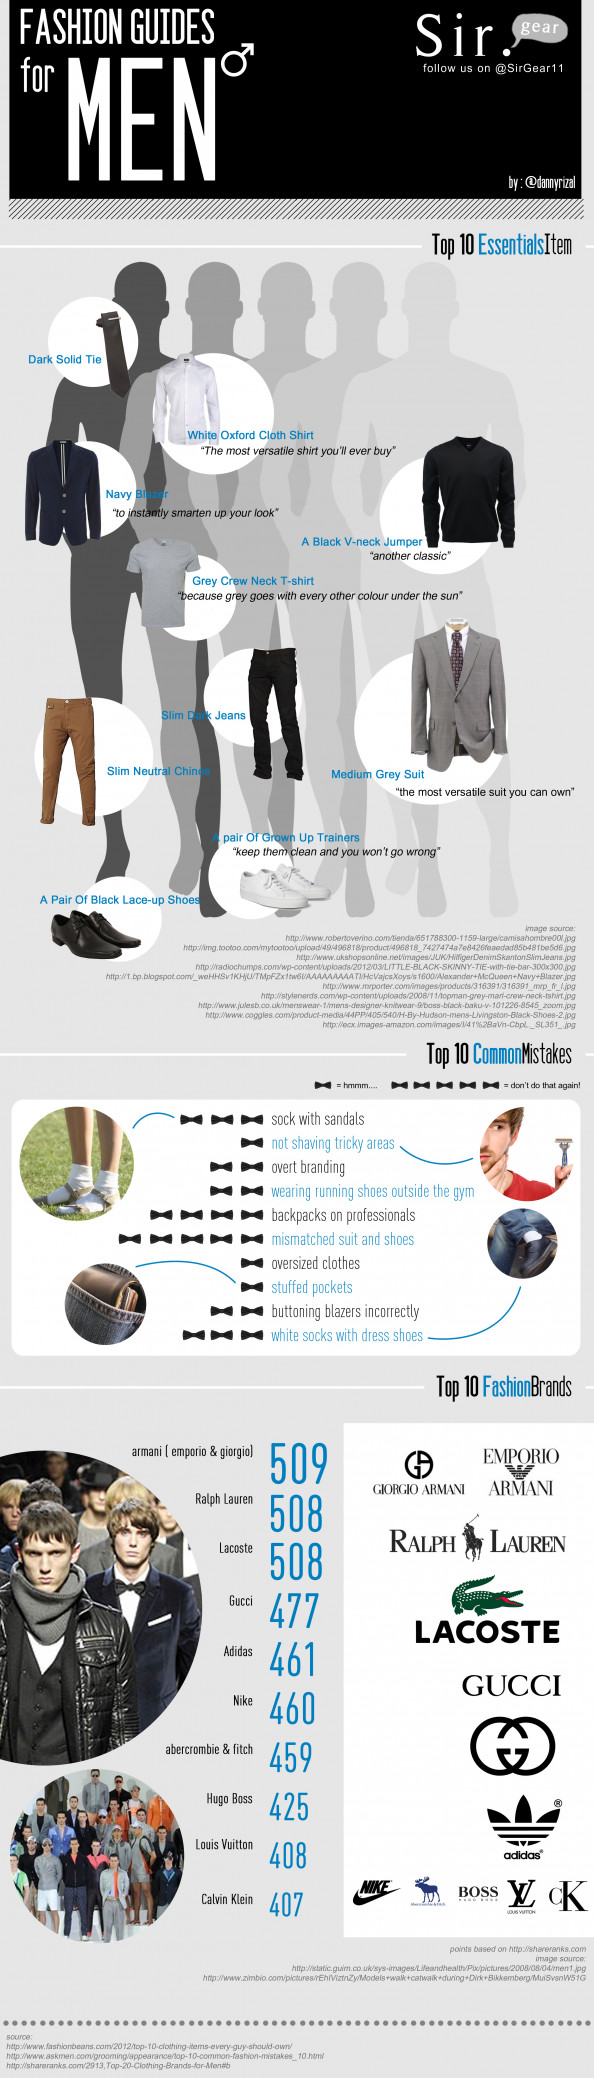 Fashion guides for men Infographic